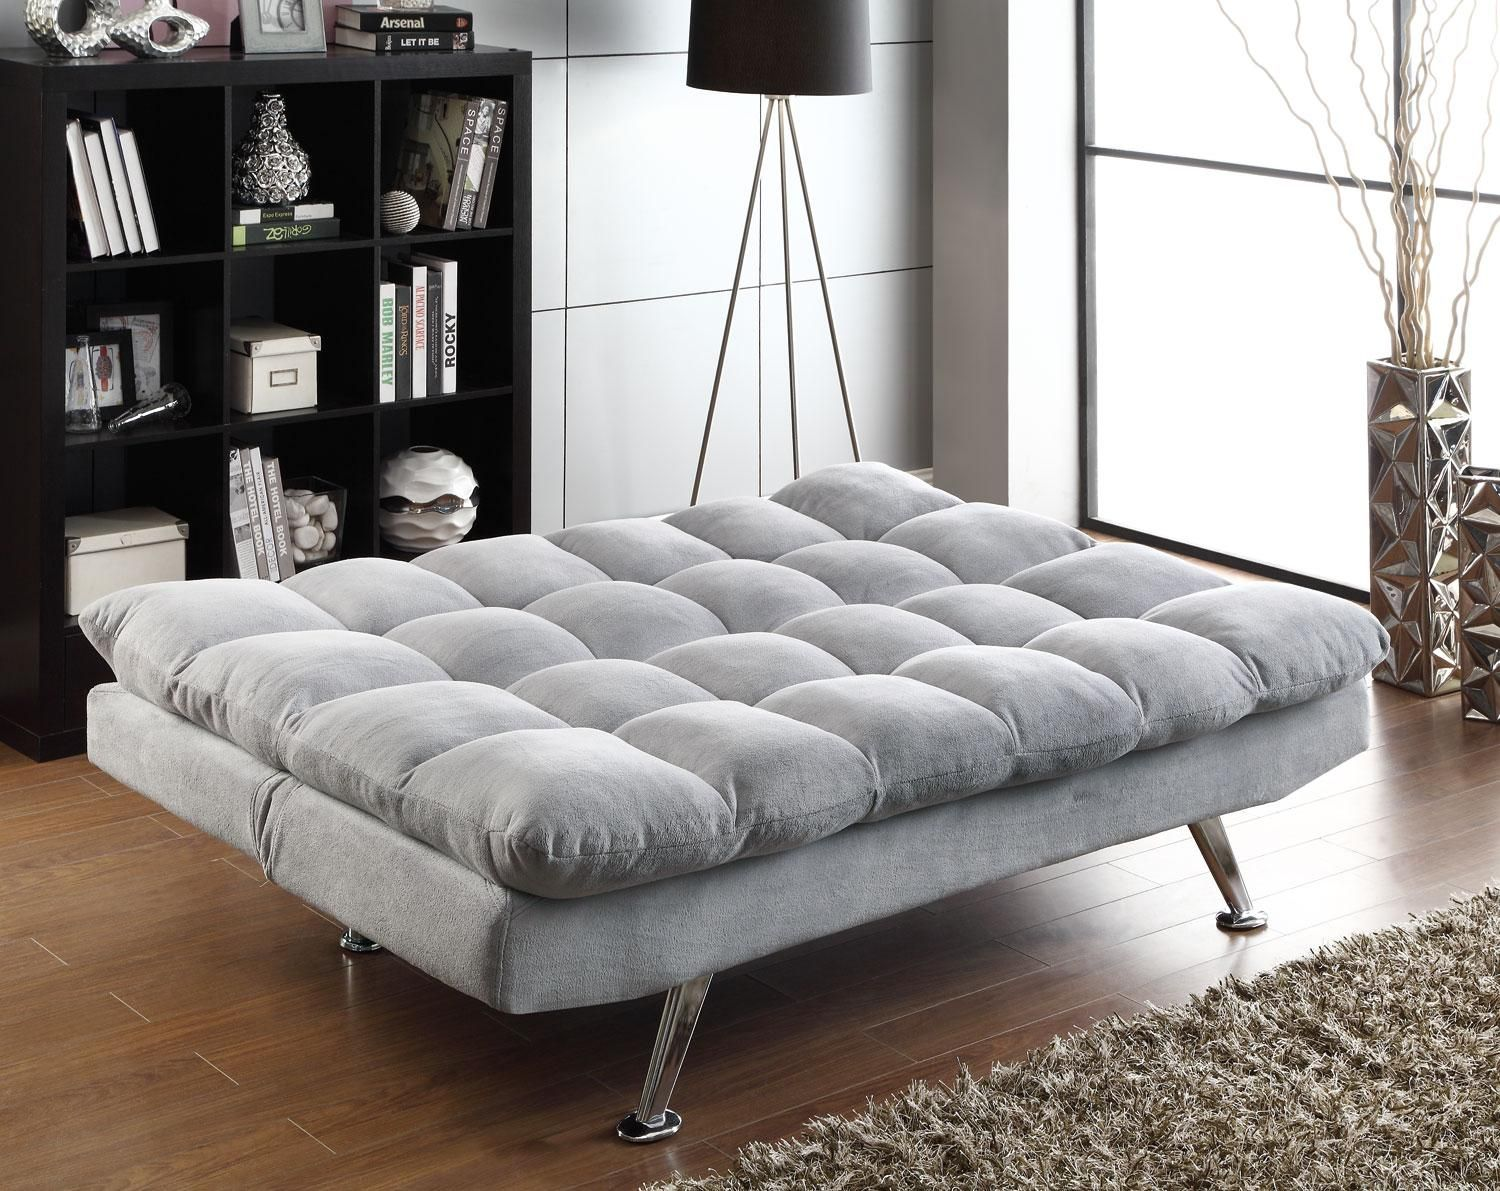 Best Futons Sofa Bed Sleeper Coaster Furniture 500775 Stores 400 x 300